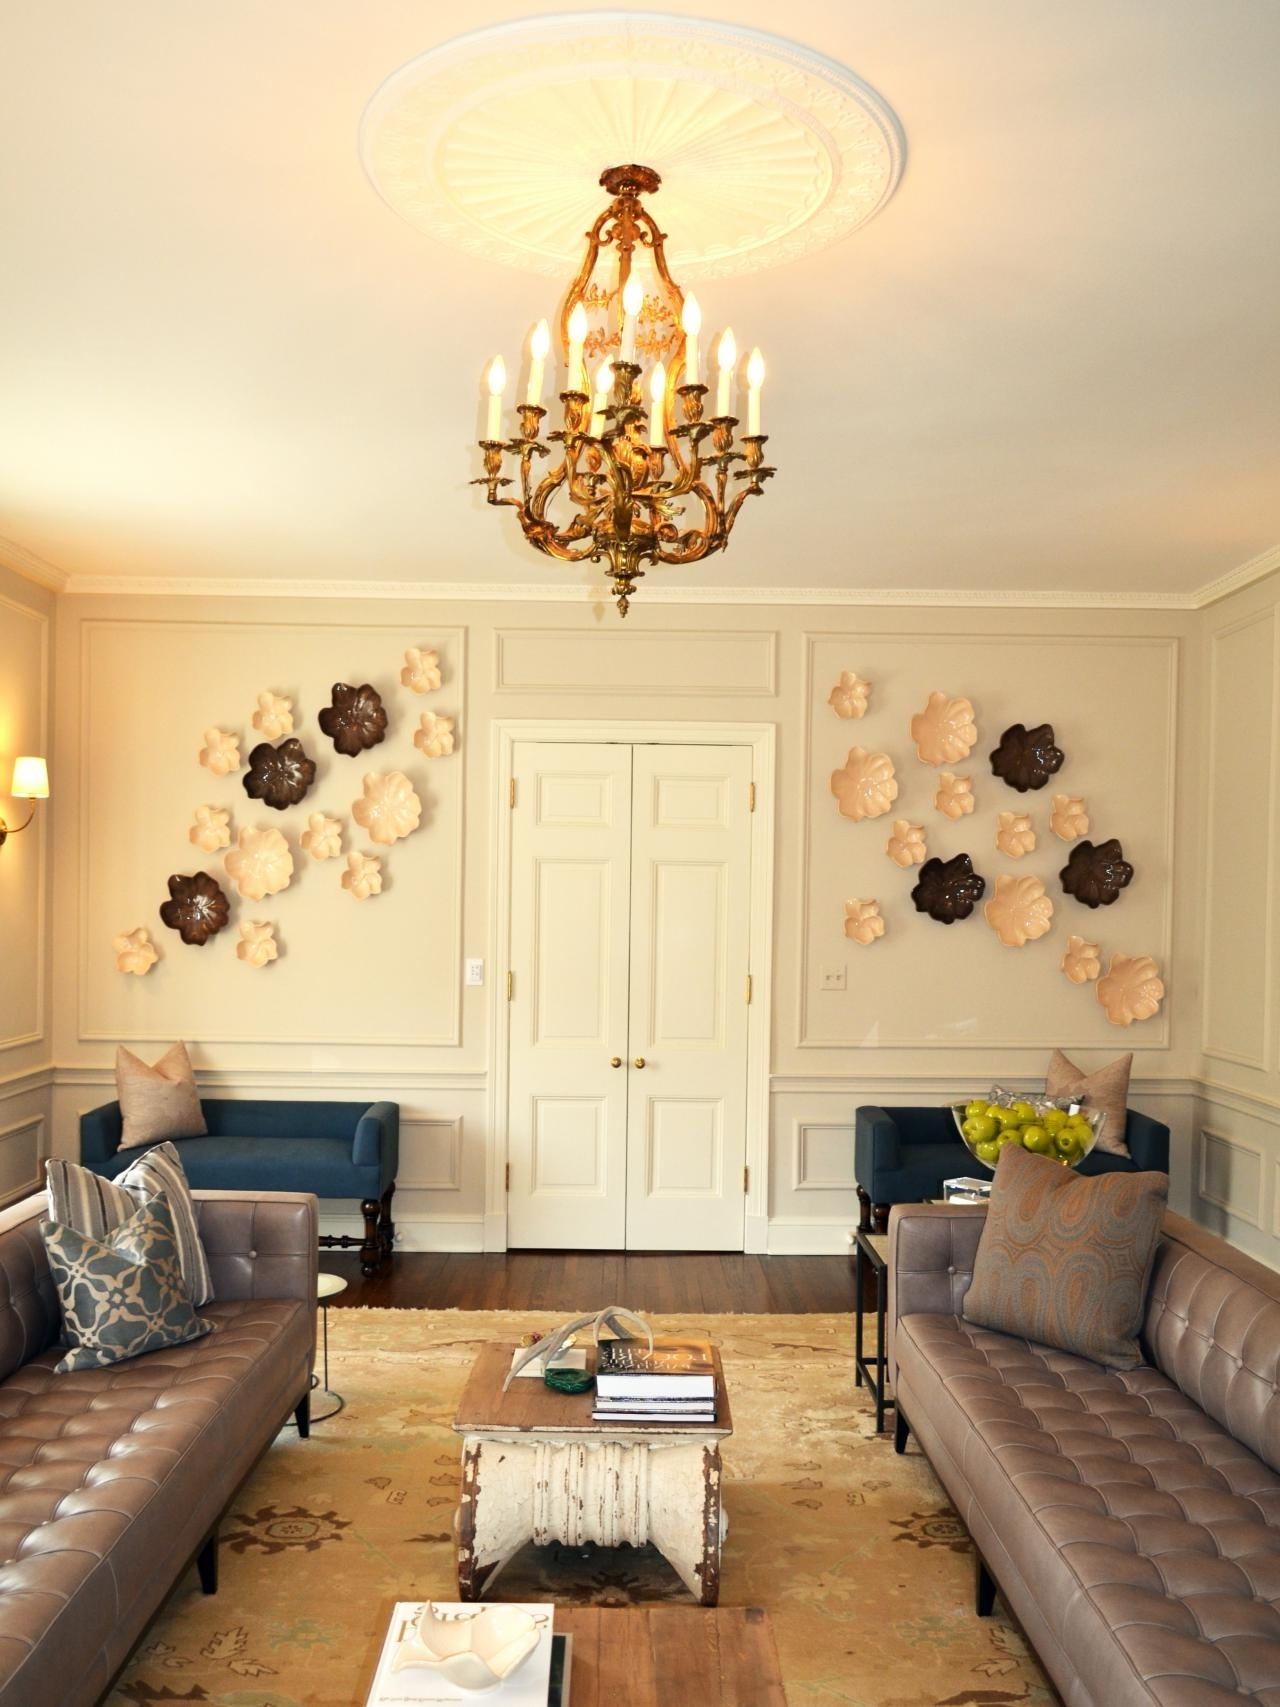 Displaying Gallery of Ceiling Medallion Wall Art (View 9 of 15 Photos)